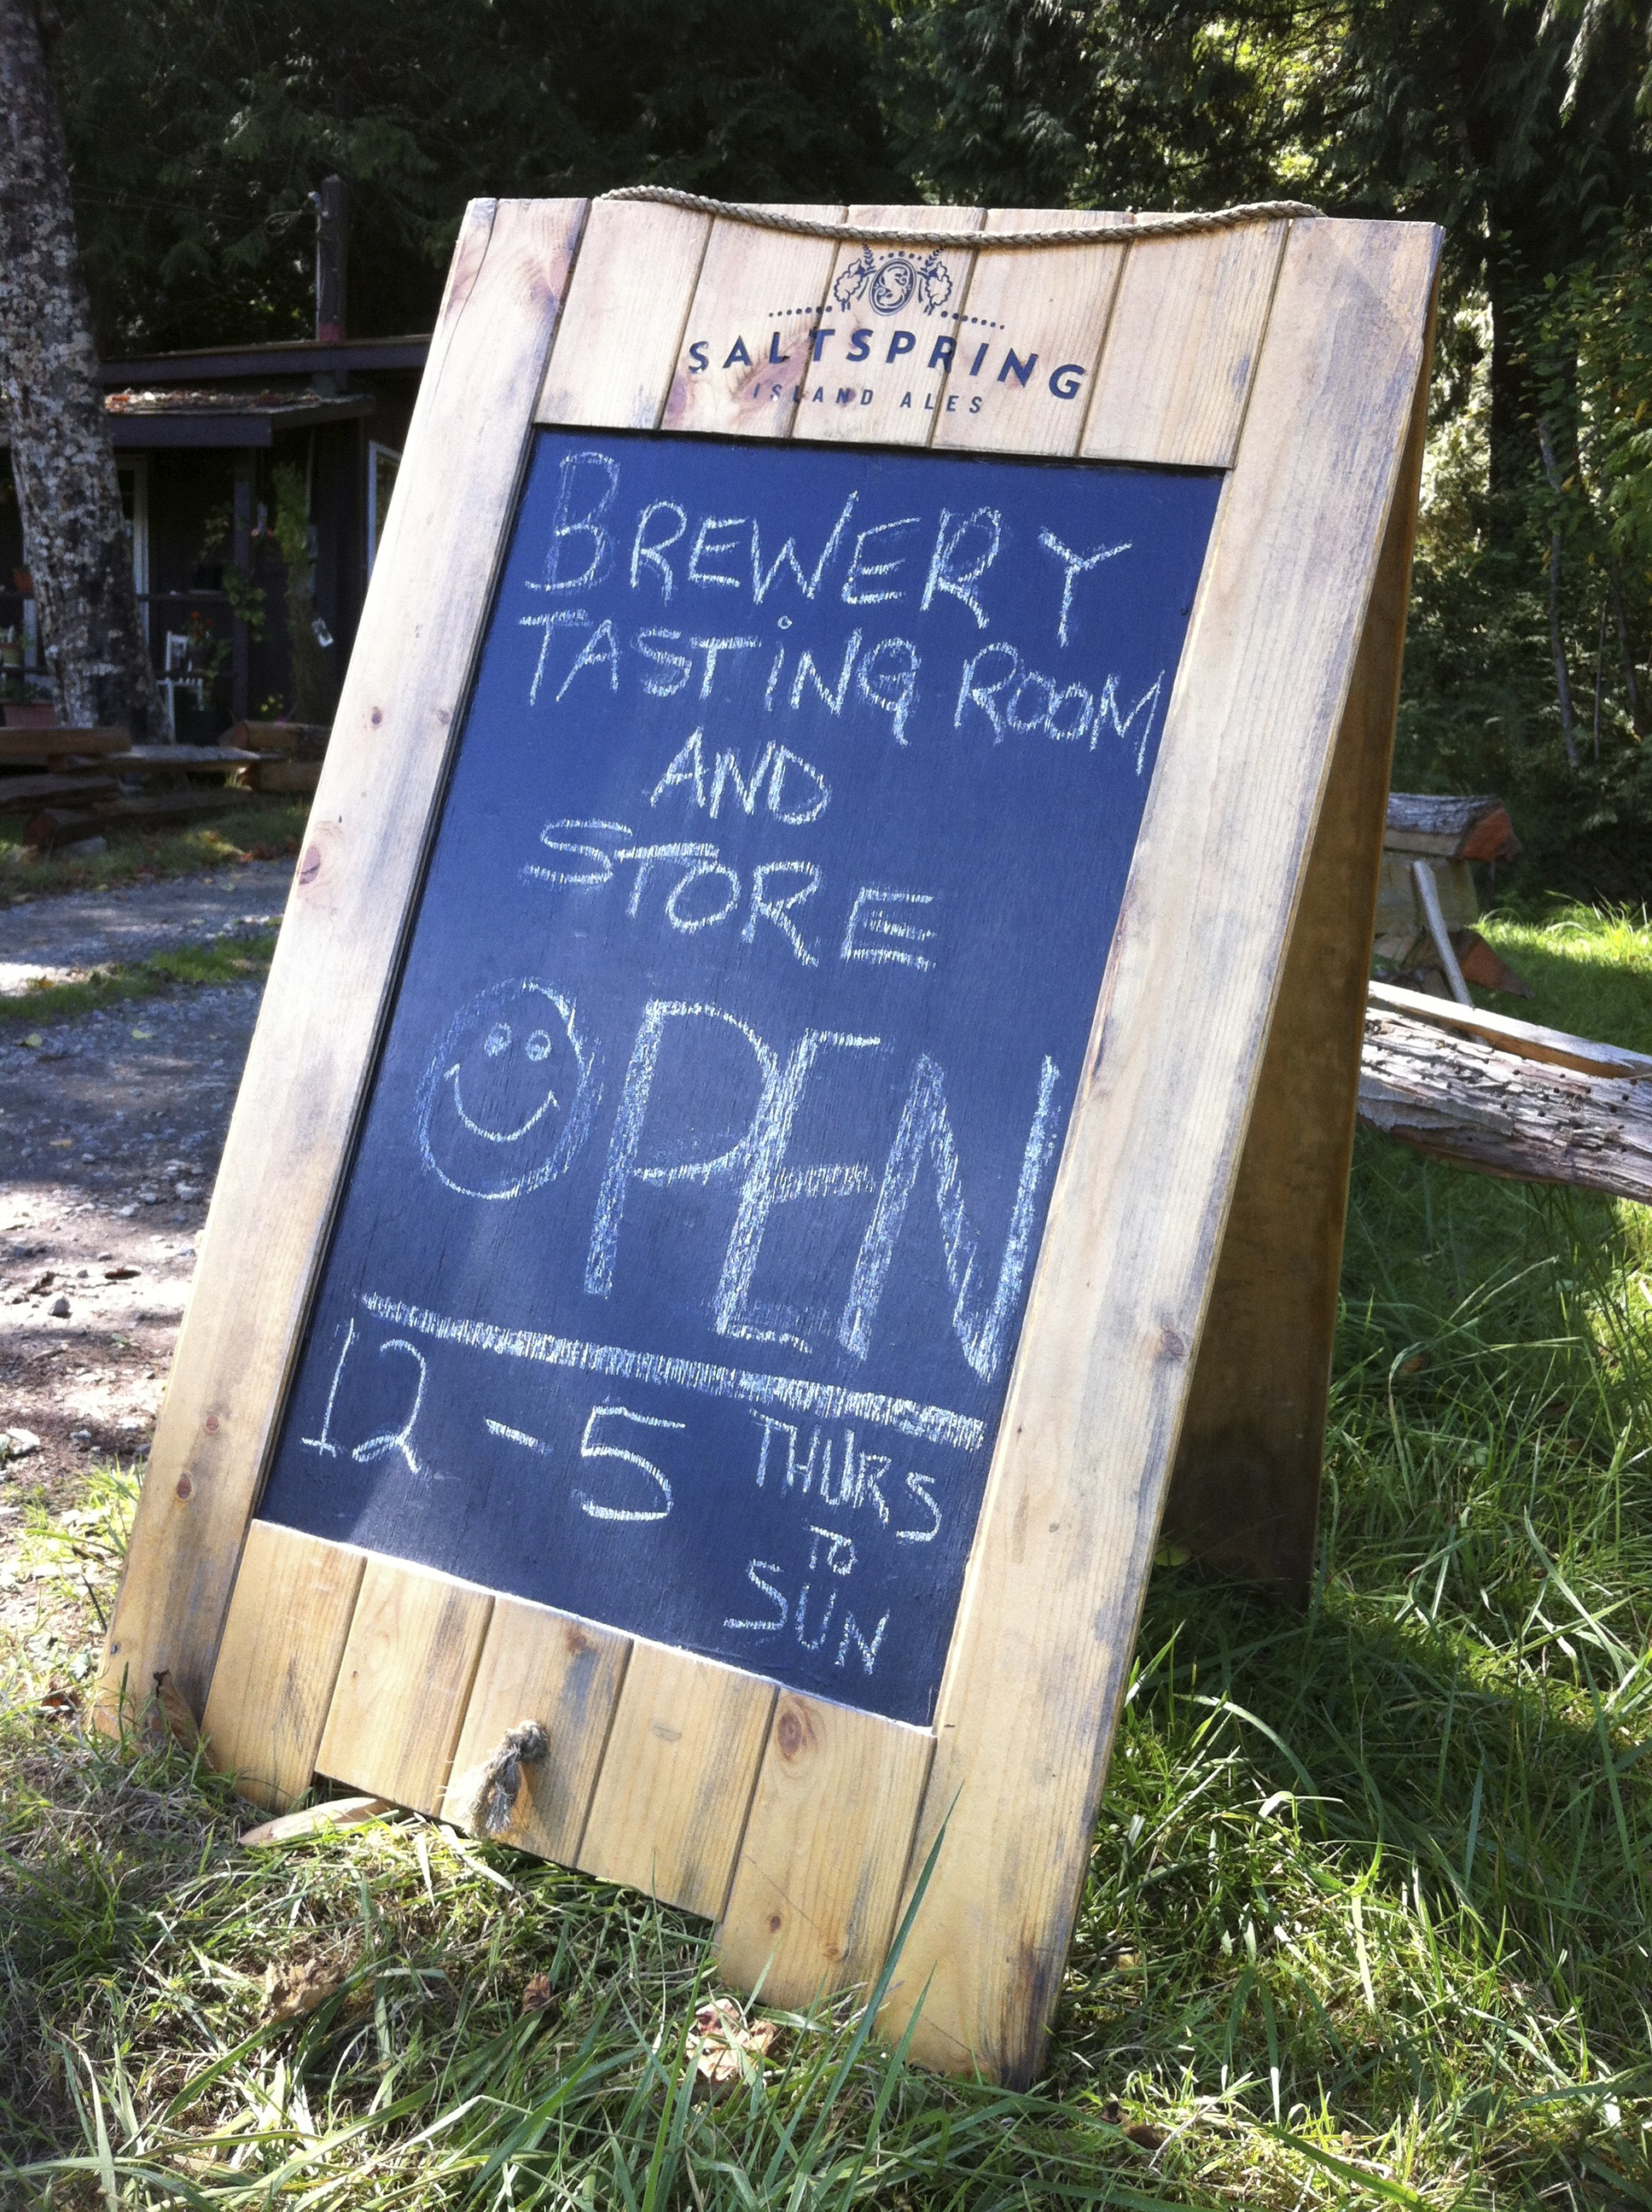 A sign advertising Salt Spring Island Ale' tasting room and store.